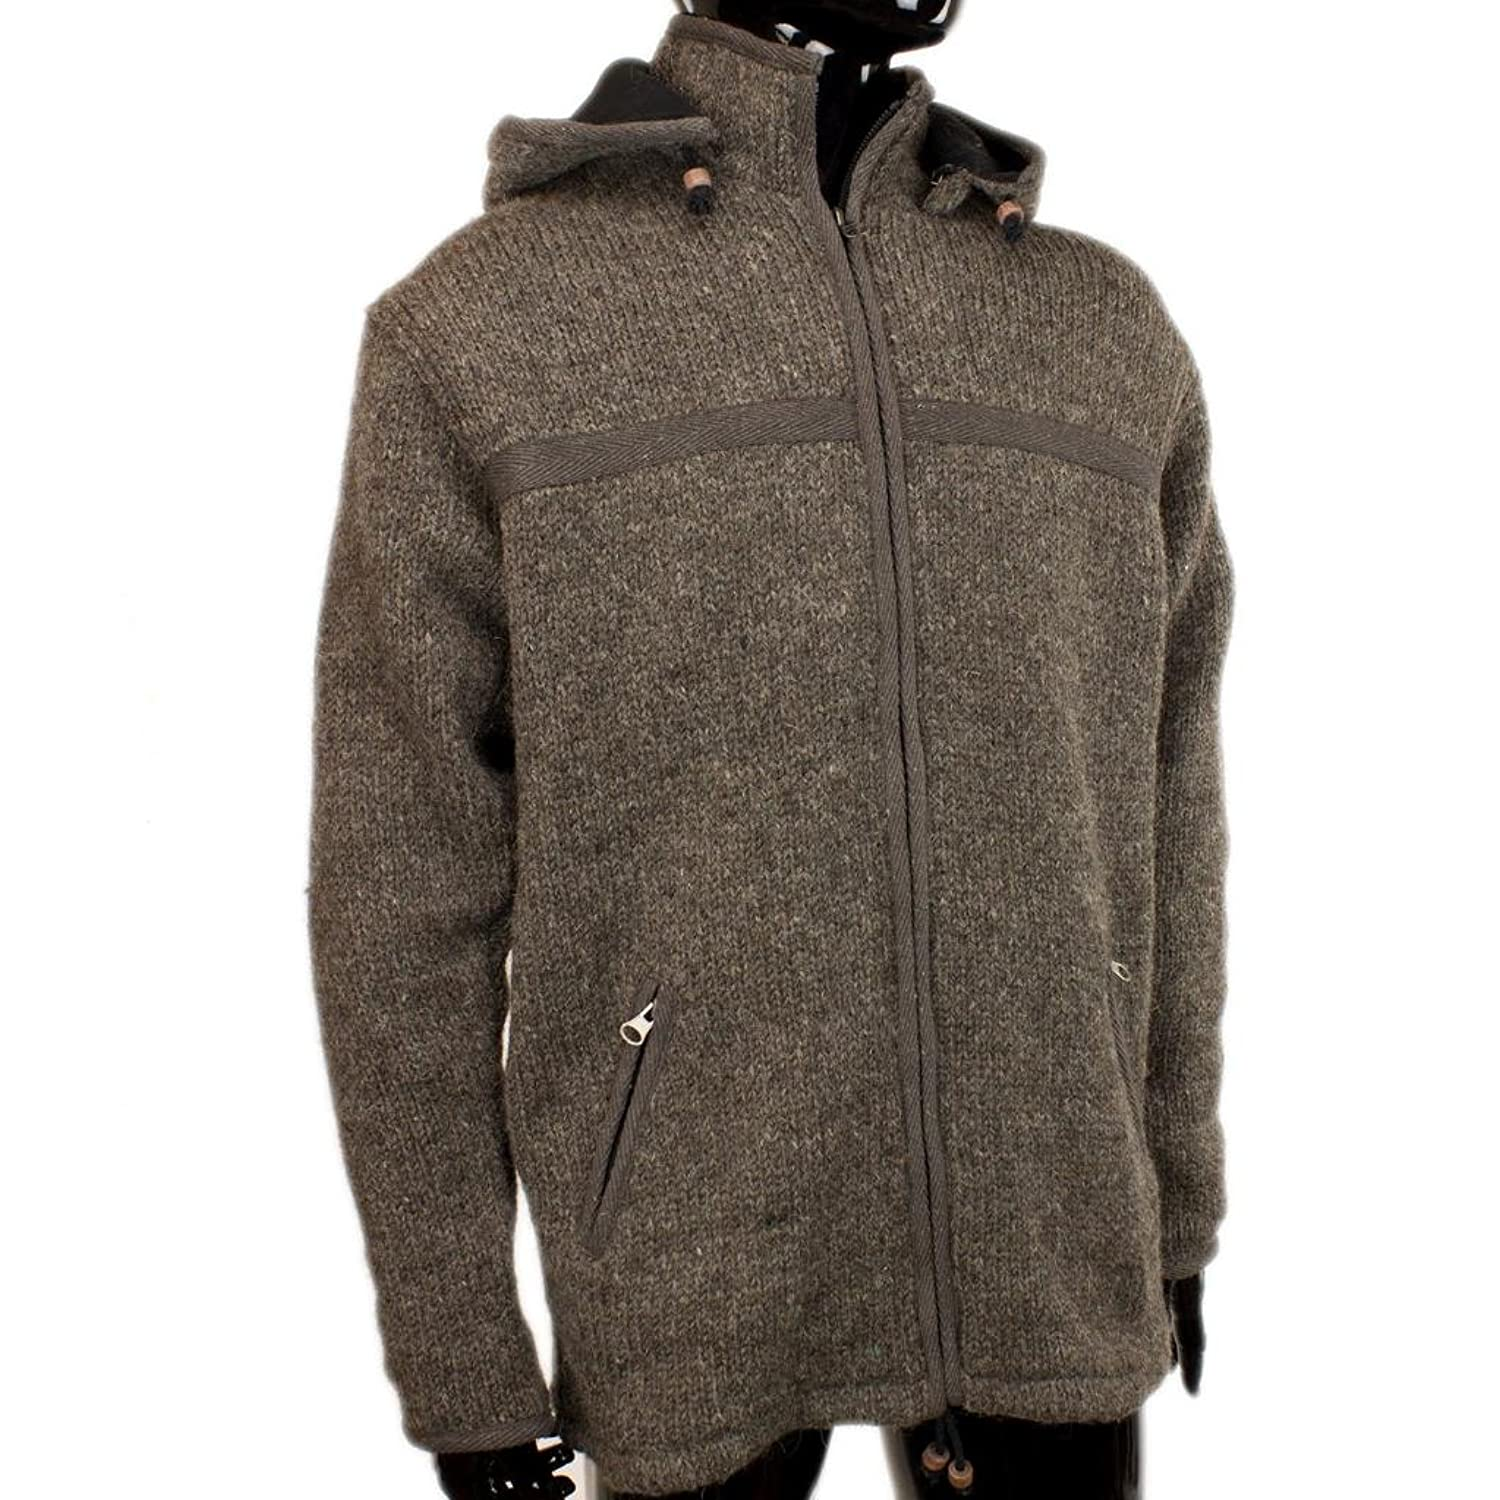 FAIR TRADE NEPAL CHUNKY WOOL KNIT ZIP UP HOODIE JACKET CARDIGAN FLEECE LINED - 3 Colours - S M L XL